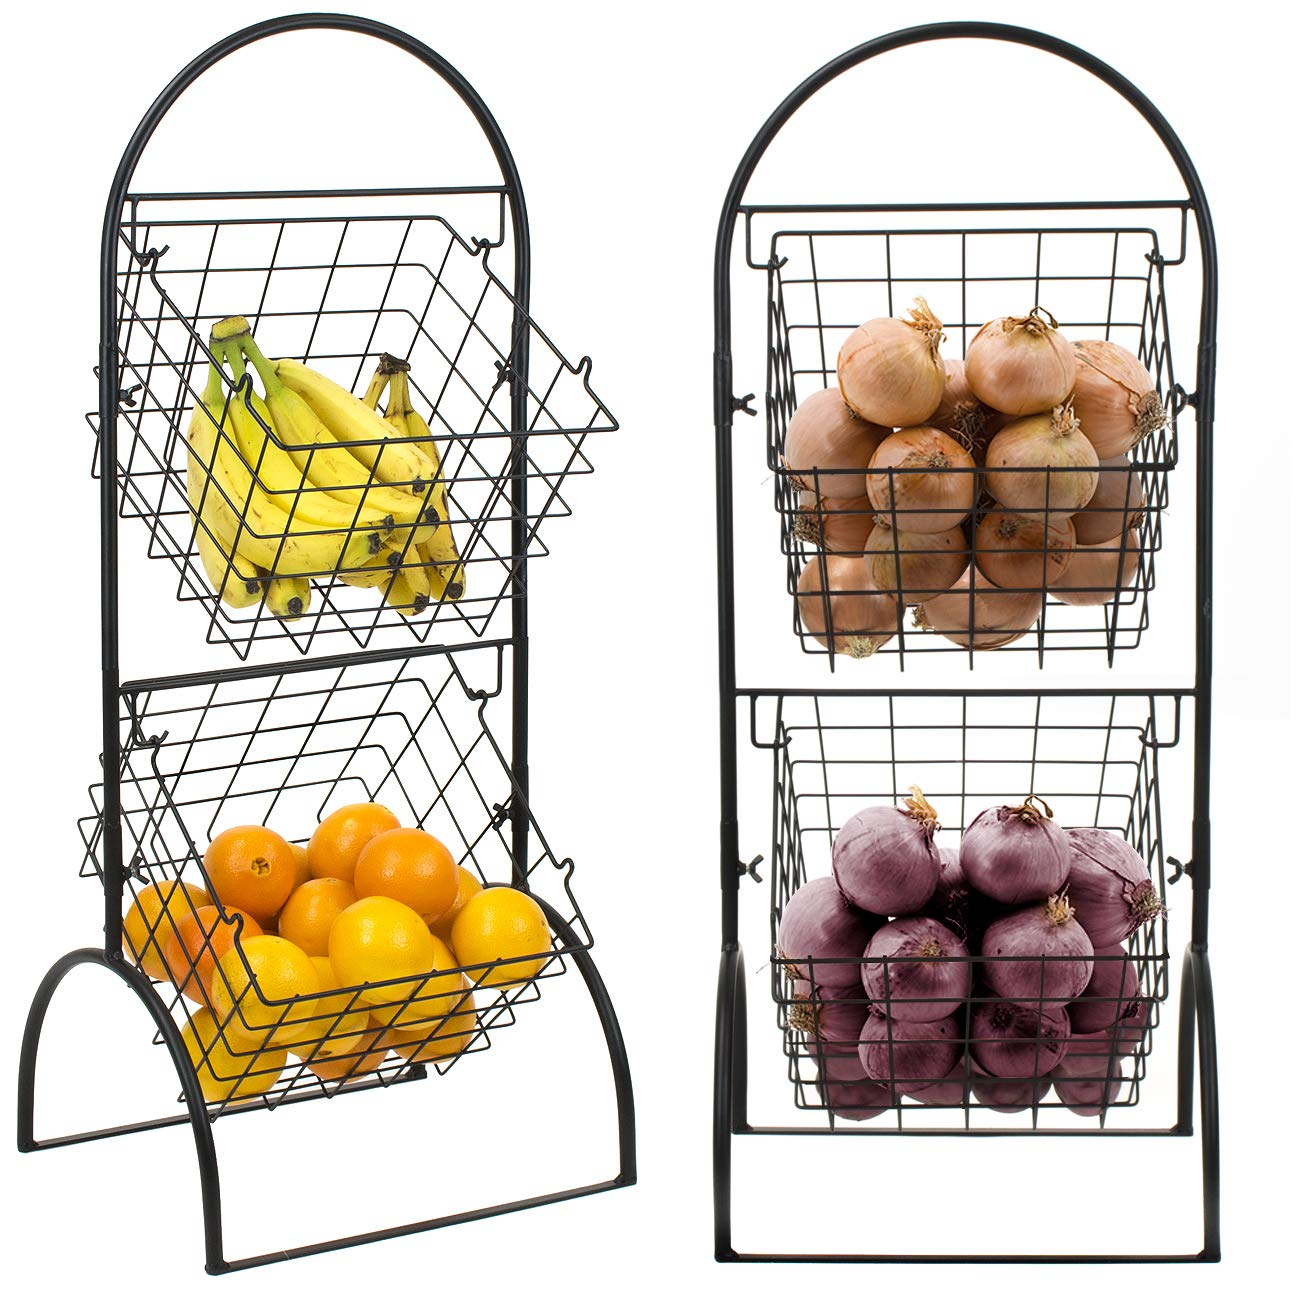 Sorbus 2 Tier Wire Market Basket Storage Stand For Fruit Vegetables Toiletries Household Items Stylish Tiered Serving Stand Baskets For Kitchen